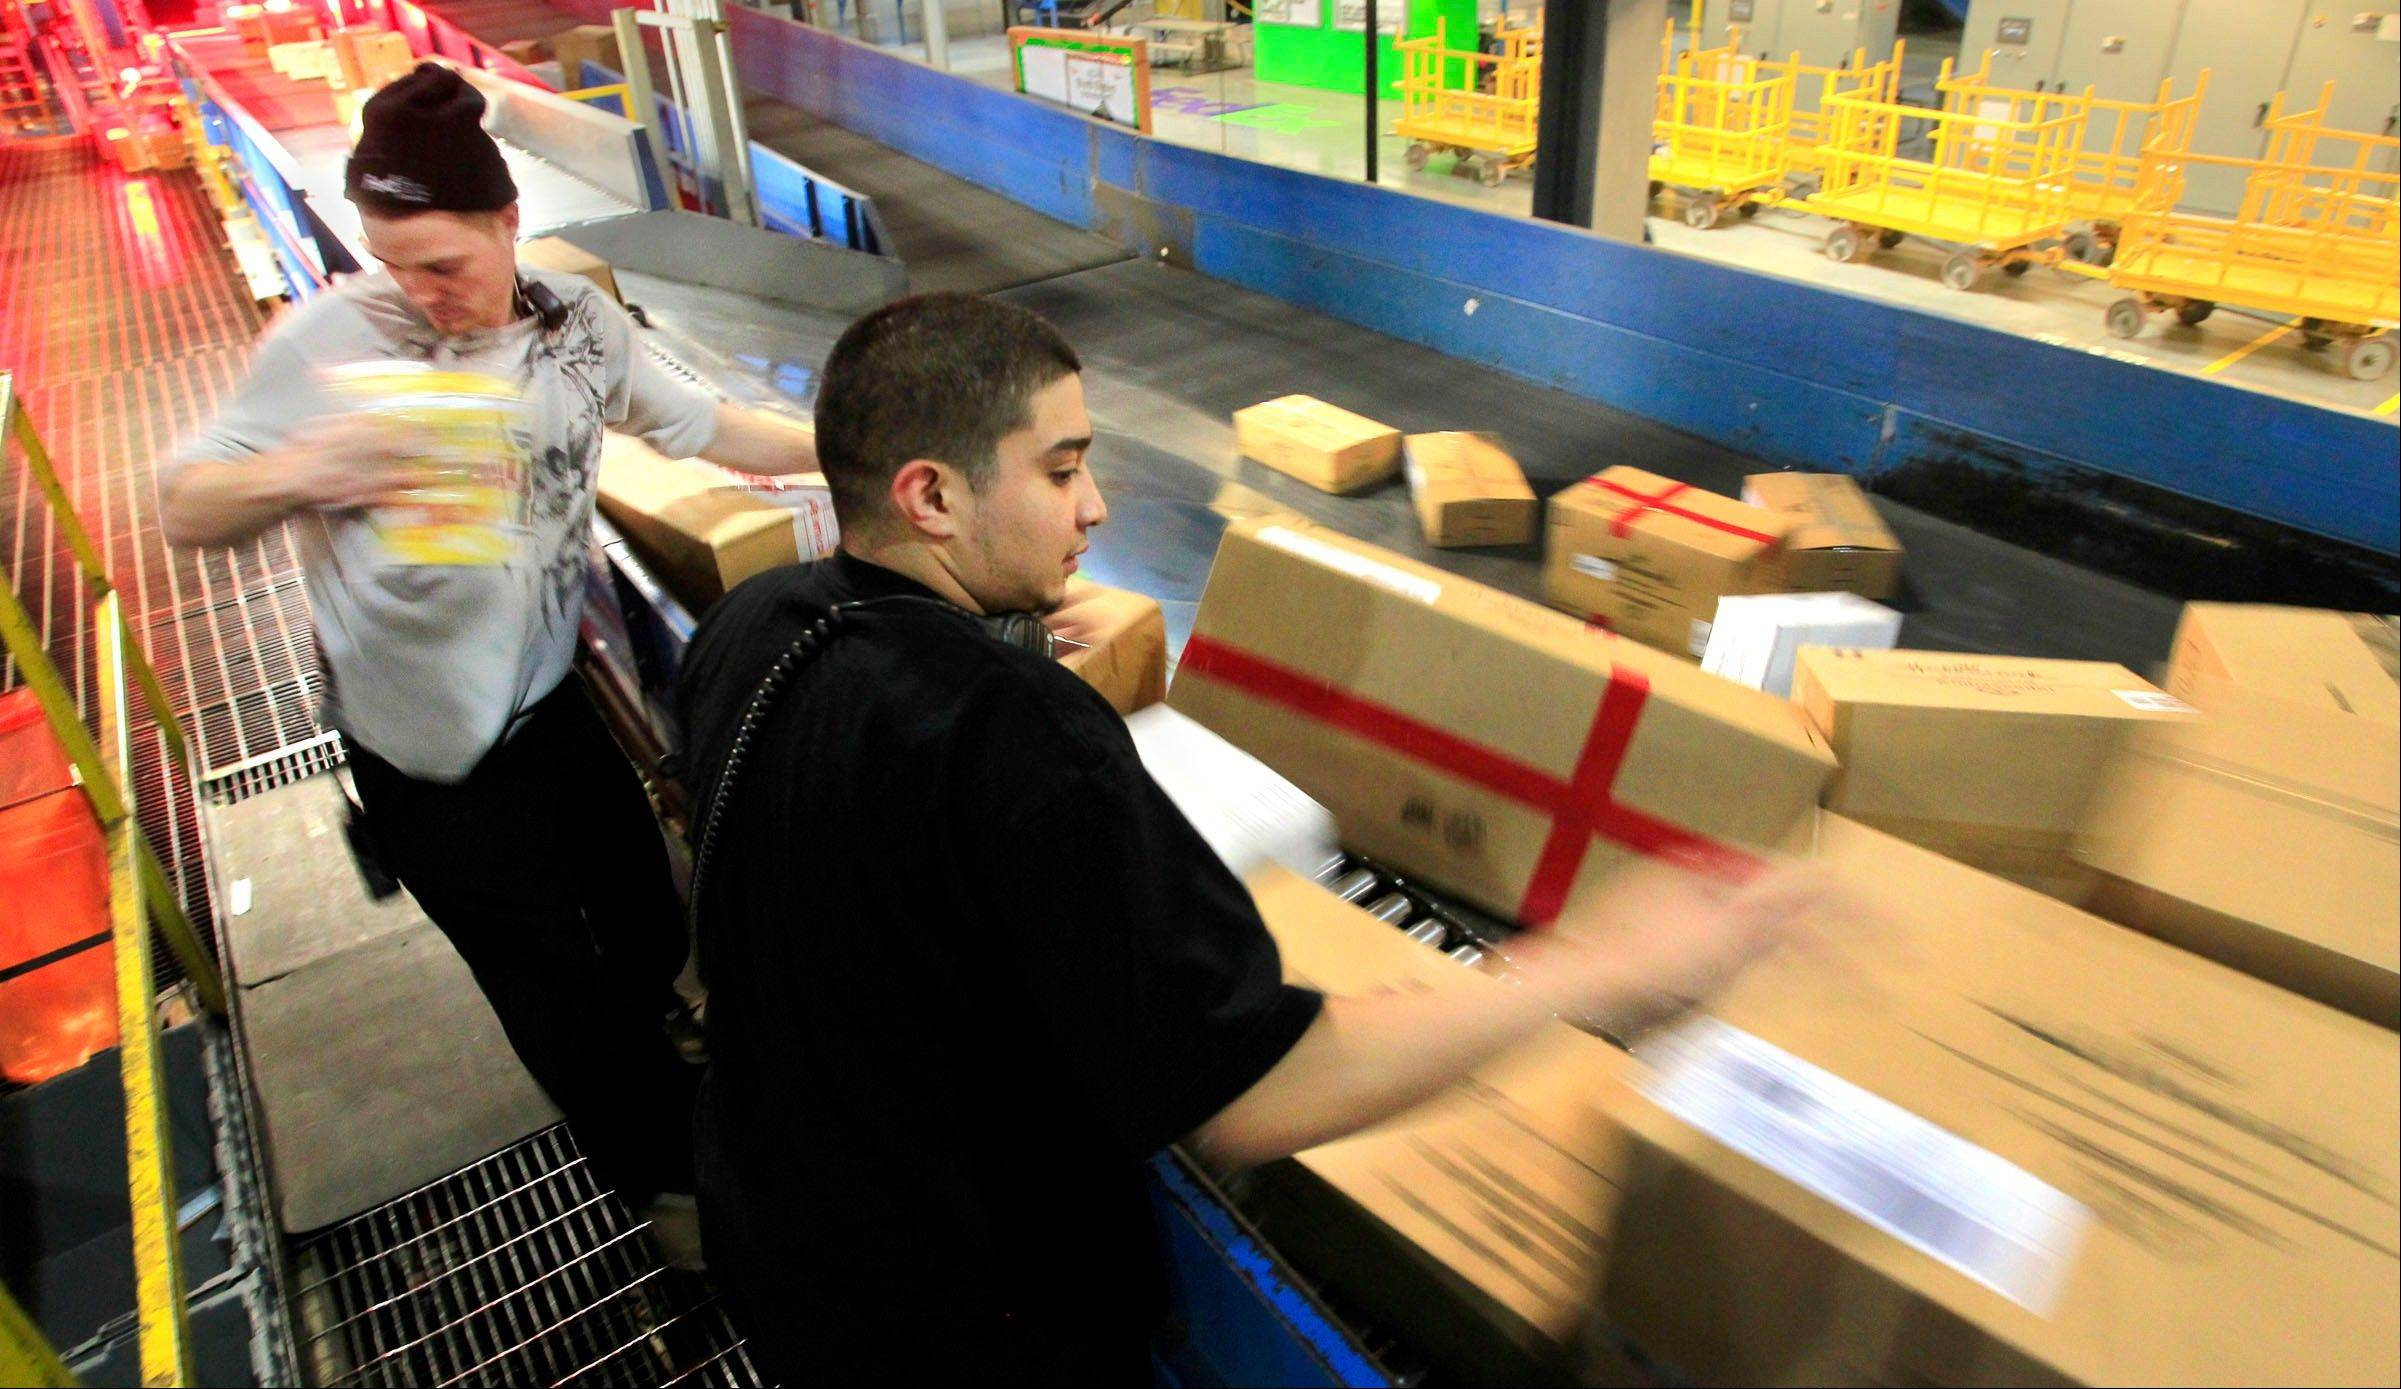 Package handlers J.D. Mansfield, left, and Carlos Campos position incoming packages for bar code scanning going through the Kansas City, Mo., FedEx Ground Hub Tuesday.